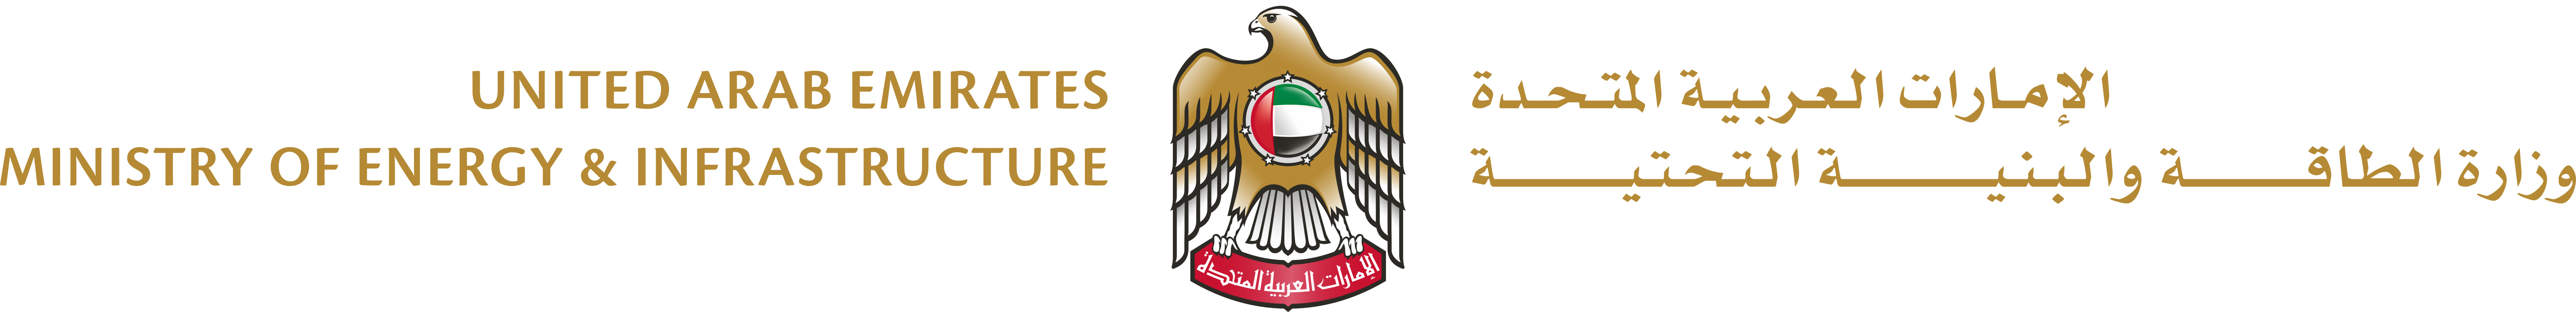 Middle East Energy | MEE | Ministry of Energy & Infrastructure